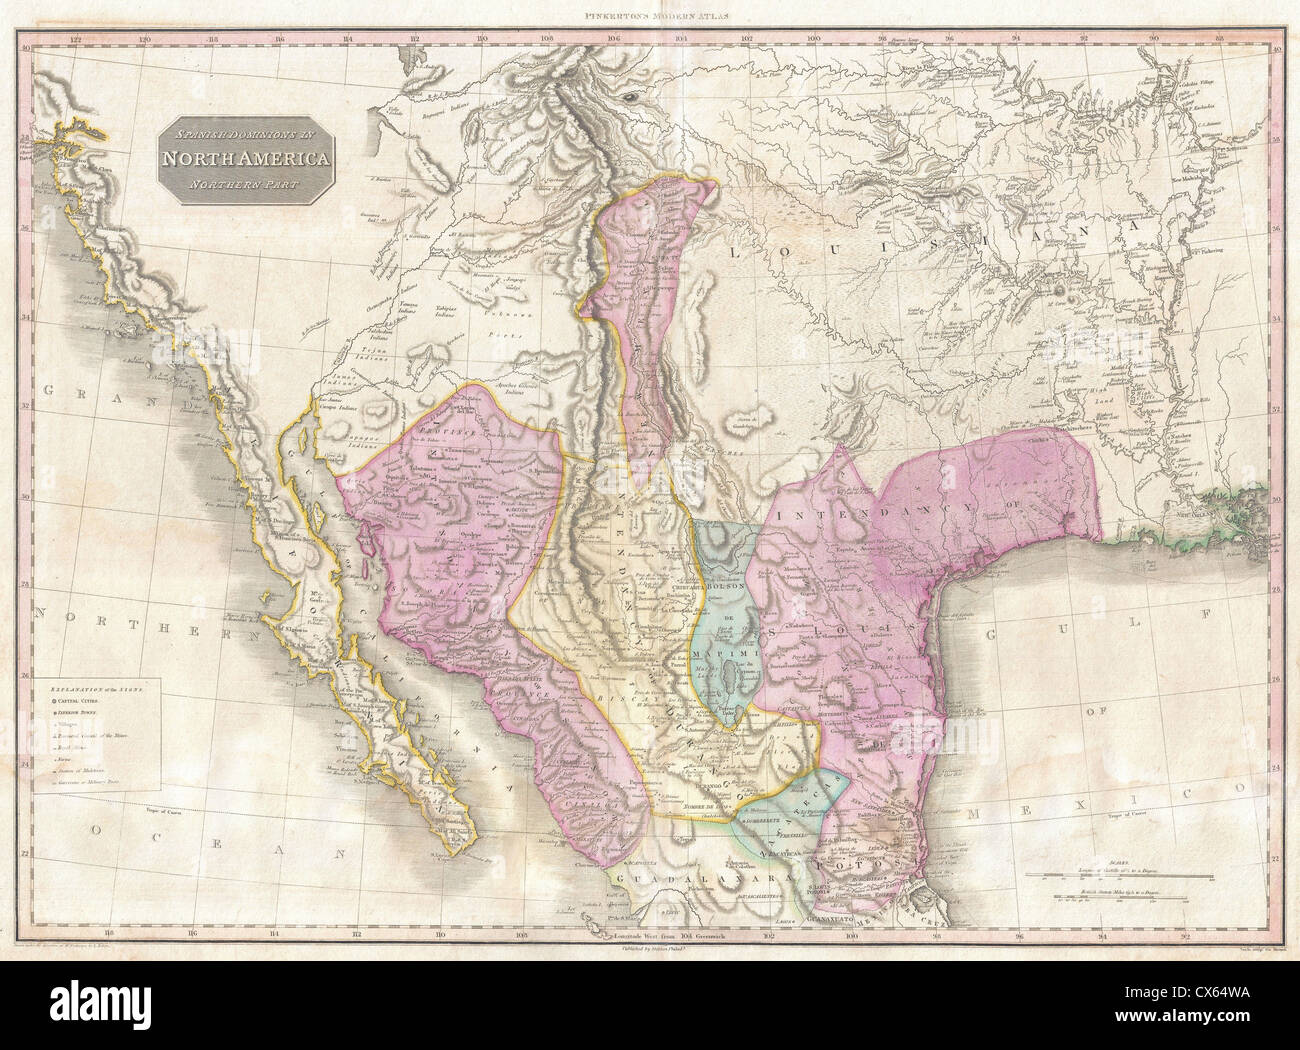 1818 Pinkerton Map of the American Southwest